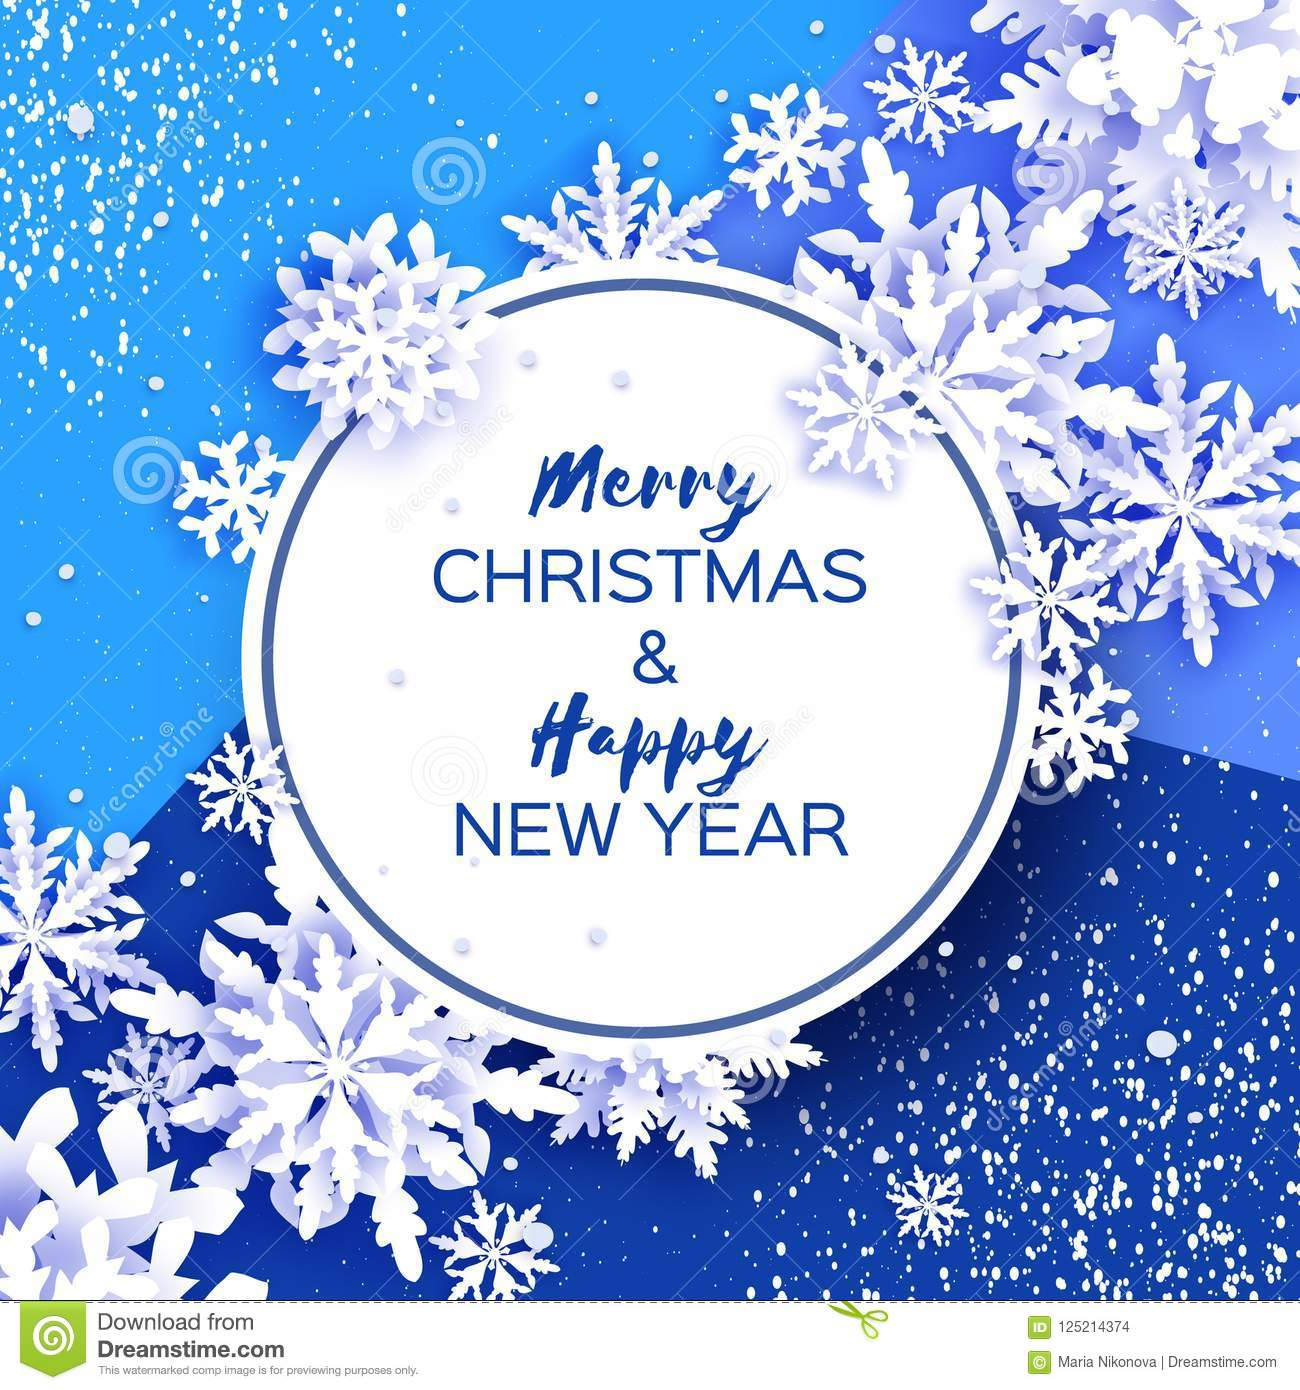 Merry Christmas And Happy New Year Greetings Card. White Paper Cut ...